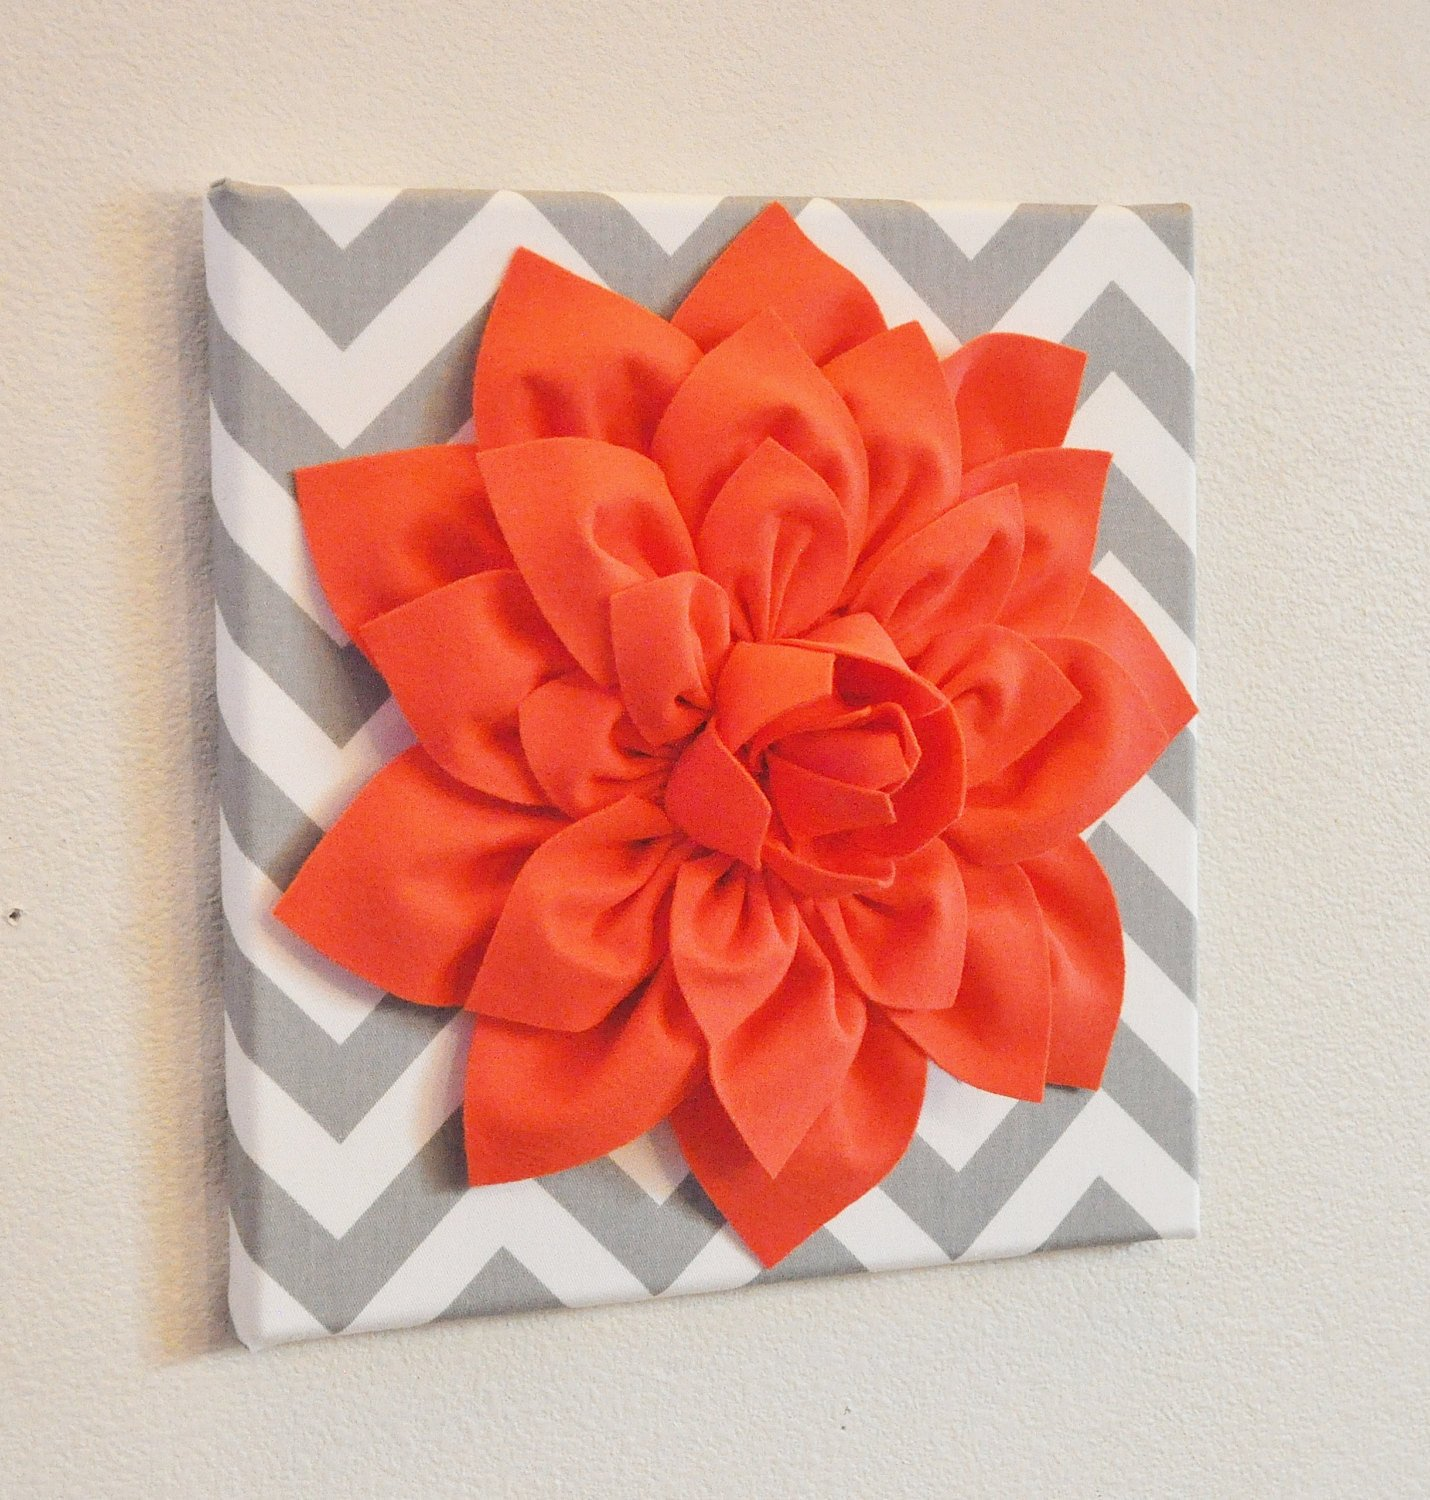 Grey and White Wall Decor Awesome Wall Flower Decor Coral Dahlia On Gray and White Chevron 12